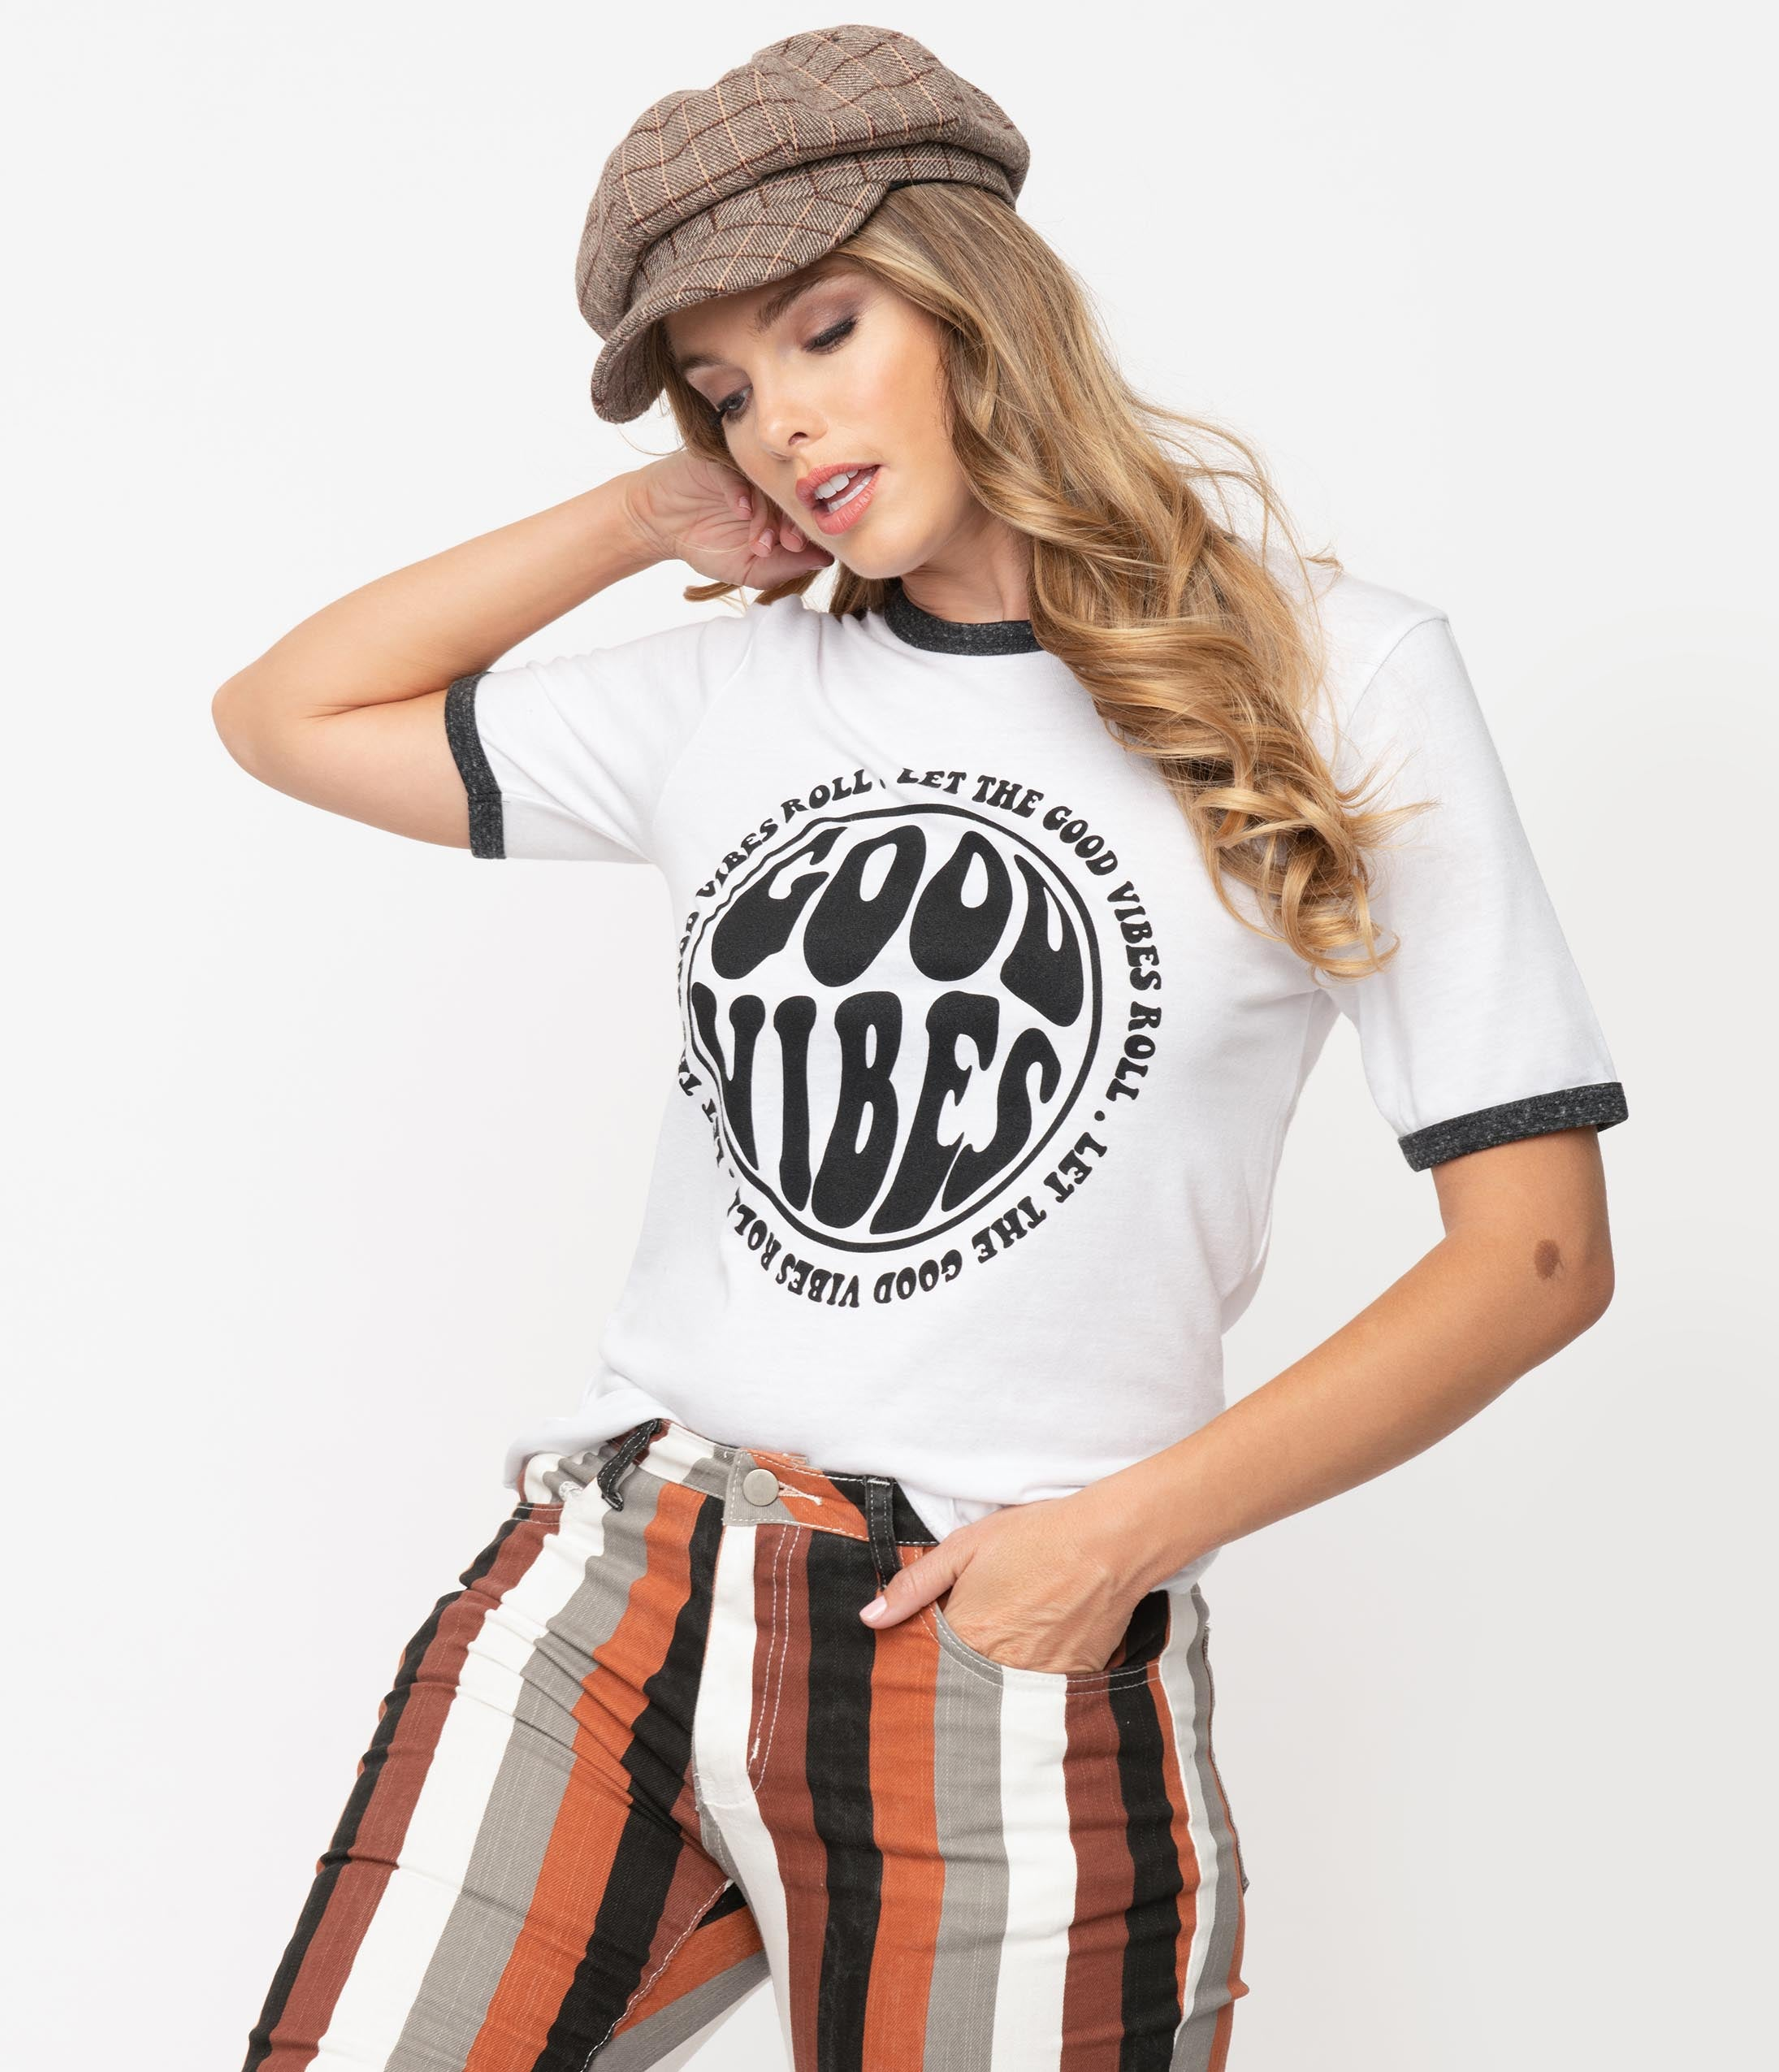 70s Clothes | Hippie Clothes & Outfits White Good Vibes Ringer Womens Graphic Tee $38.00 AT vintagedancer.com